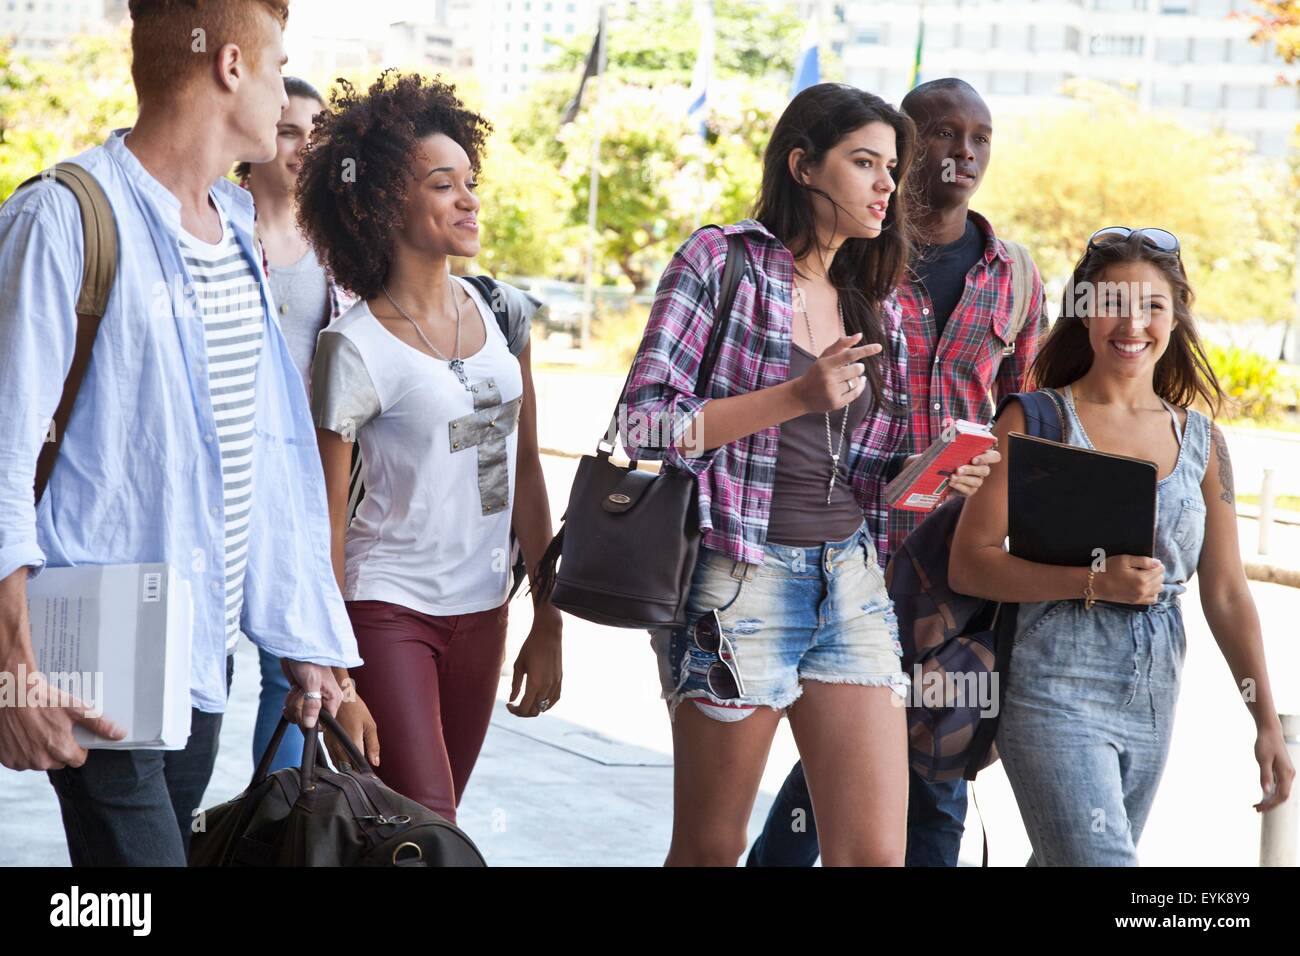 Higher education students walking - Stock Image